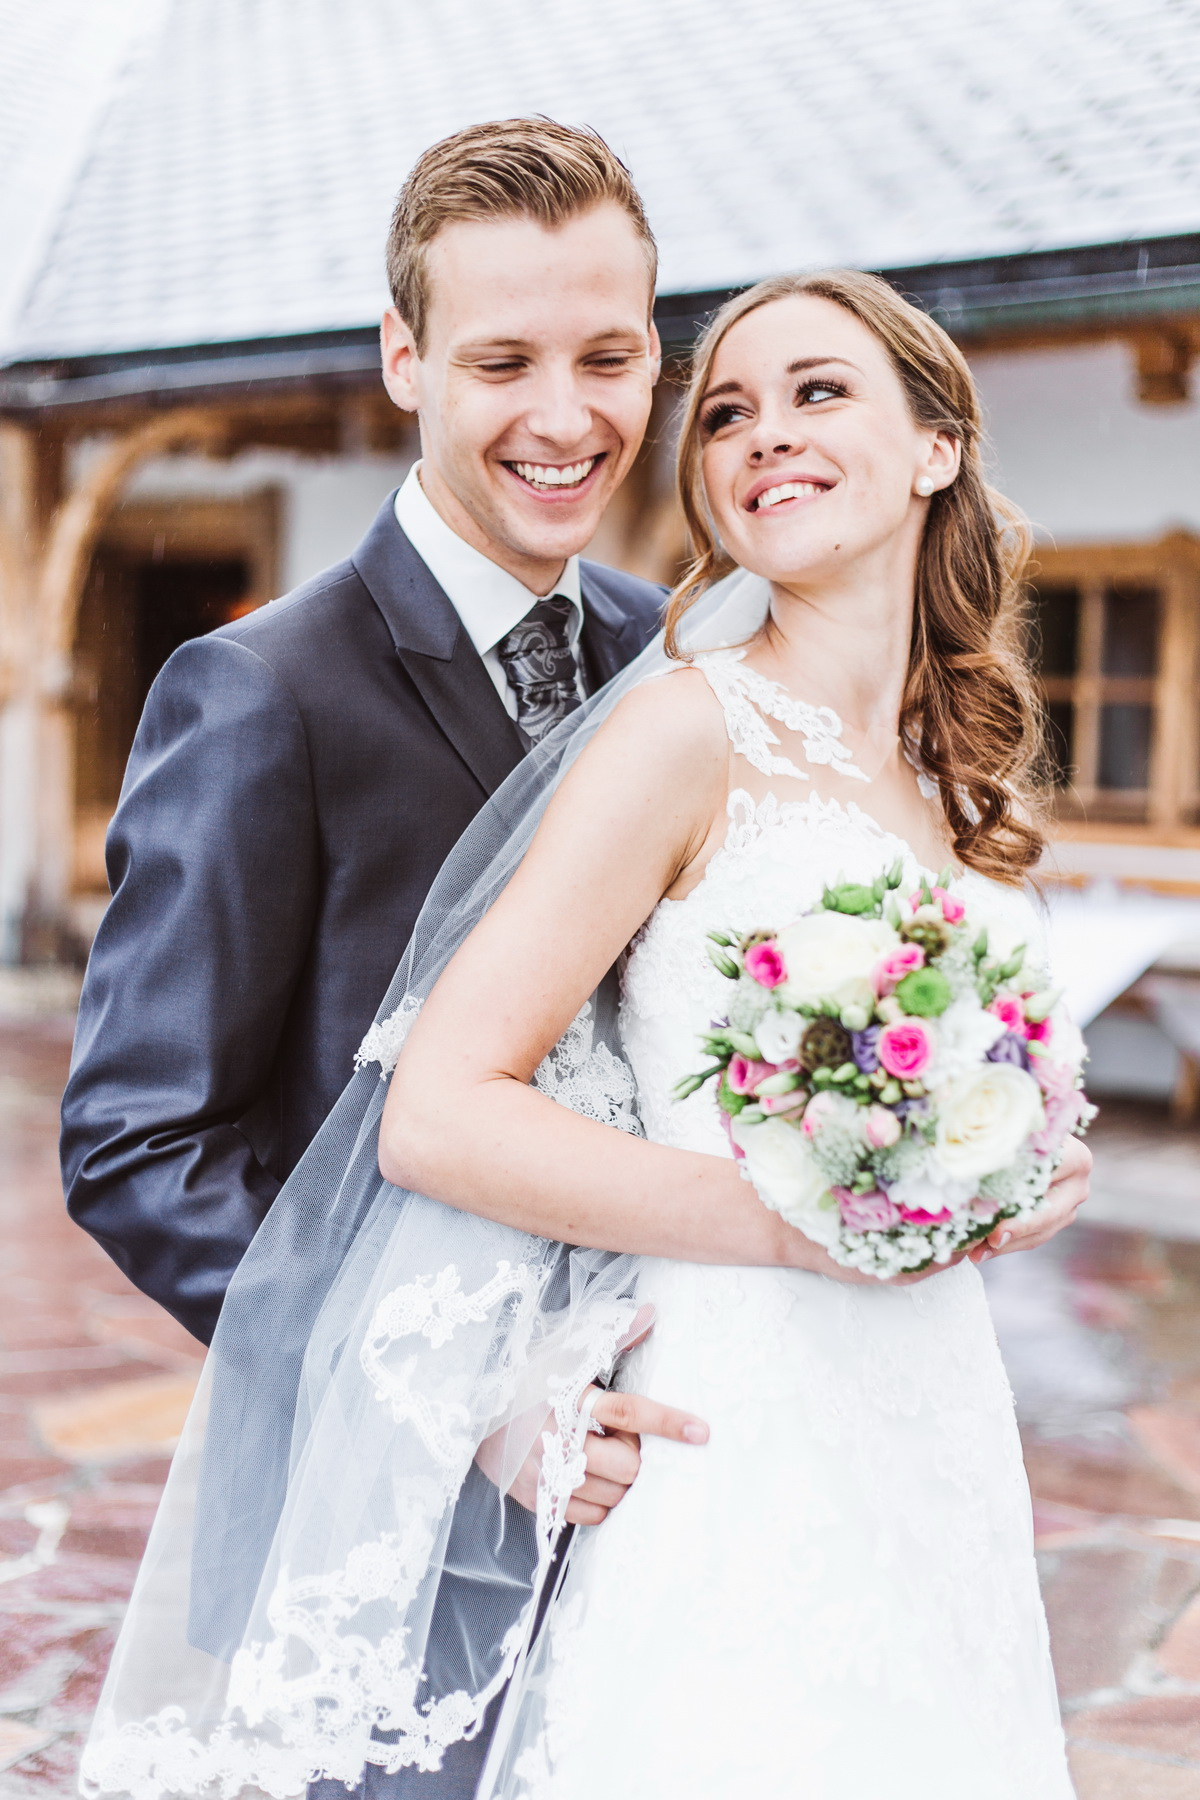 Claudia Sittig Photography - Couple - Hochzeit  Wedding - Selina und Richard 33